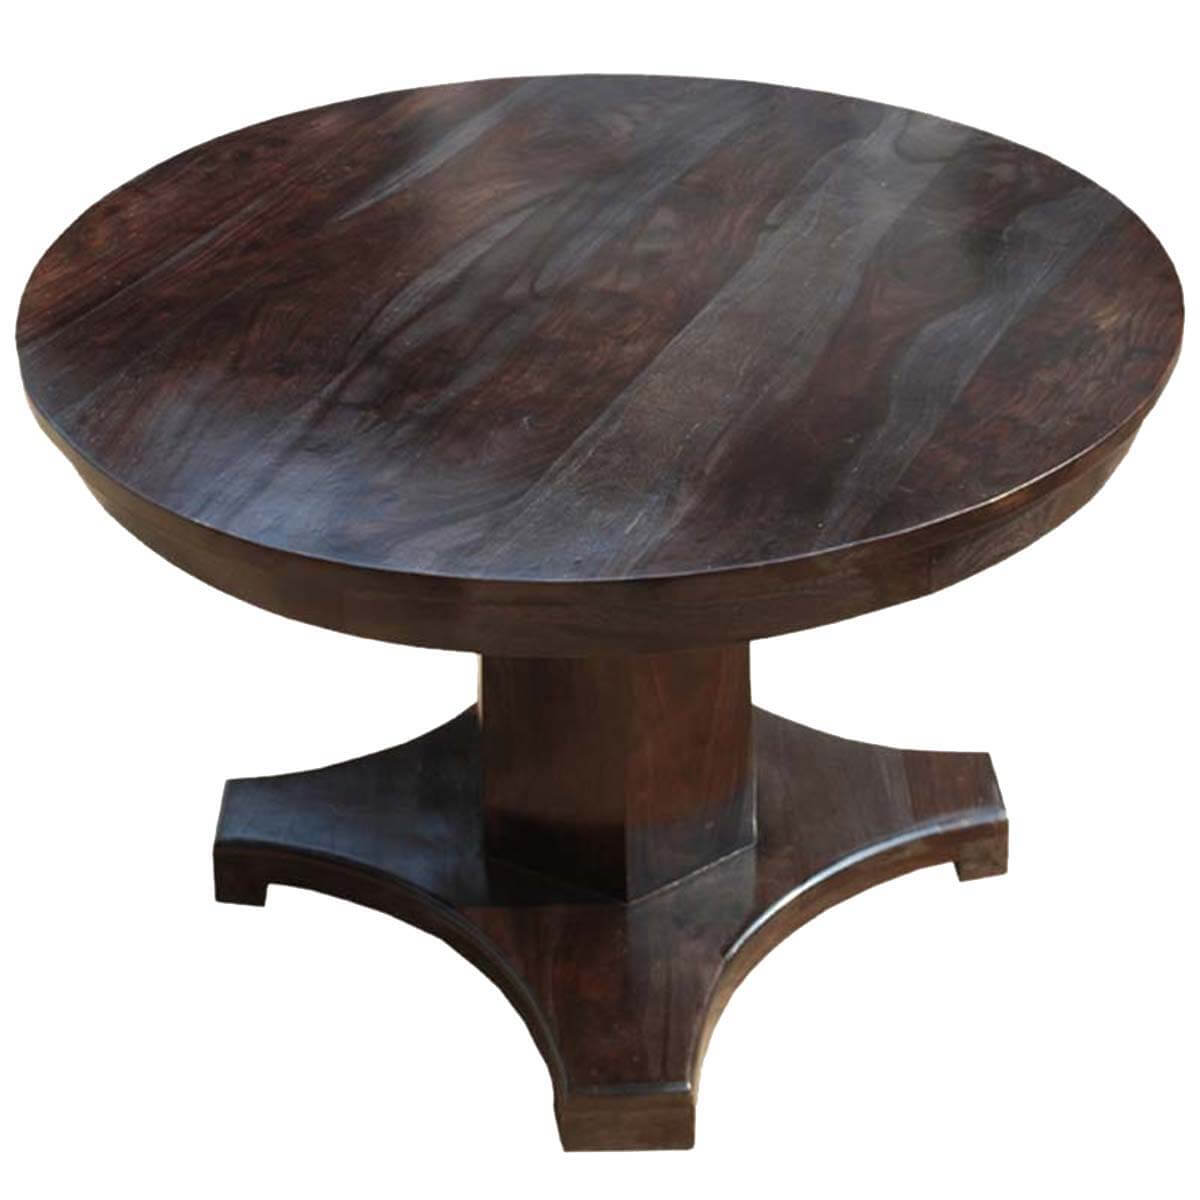 Round Solid Wood Dining Table: Solid Wood Sutton Rustic Round Pedestal Dining Table For 4